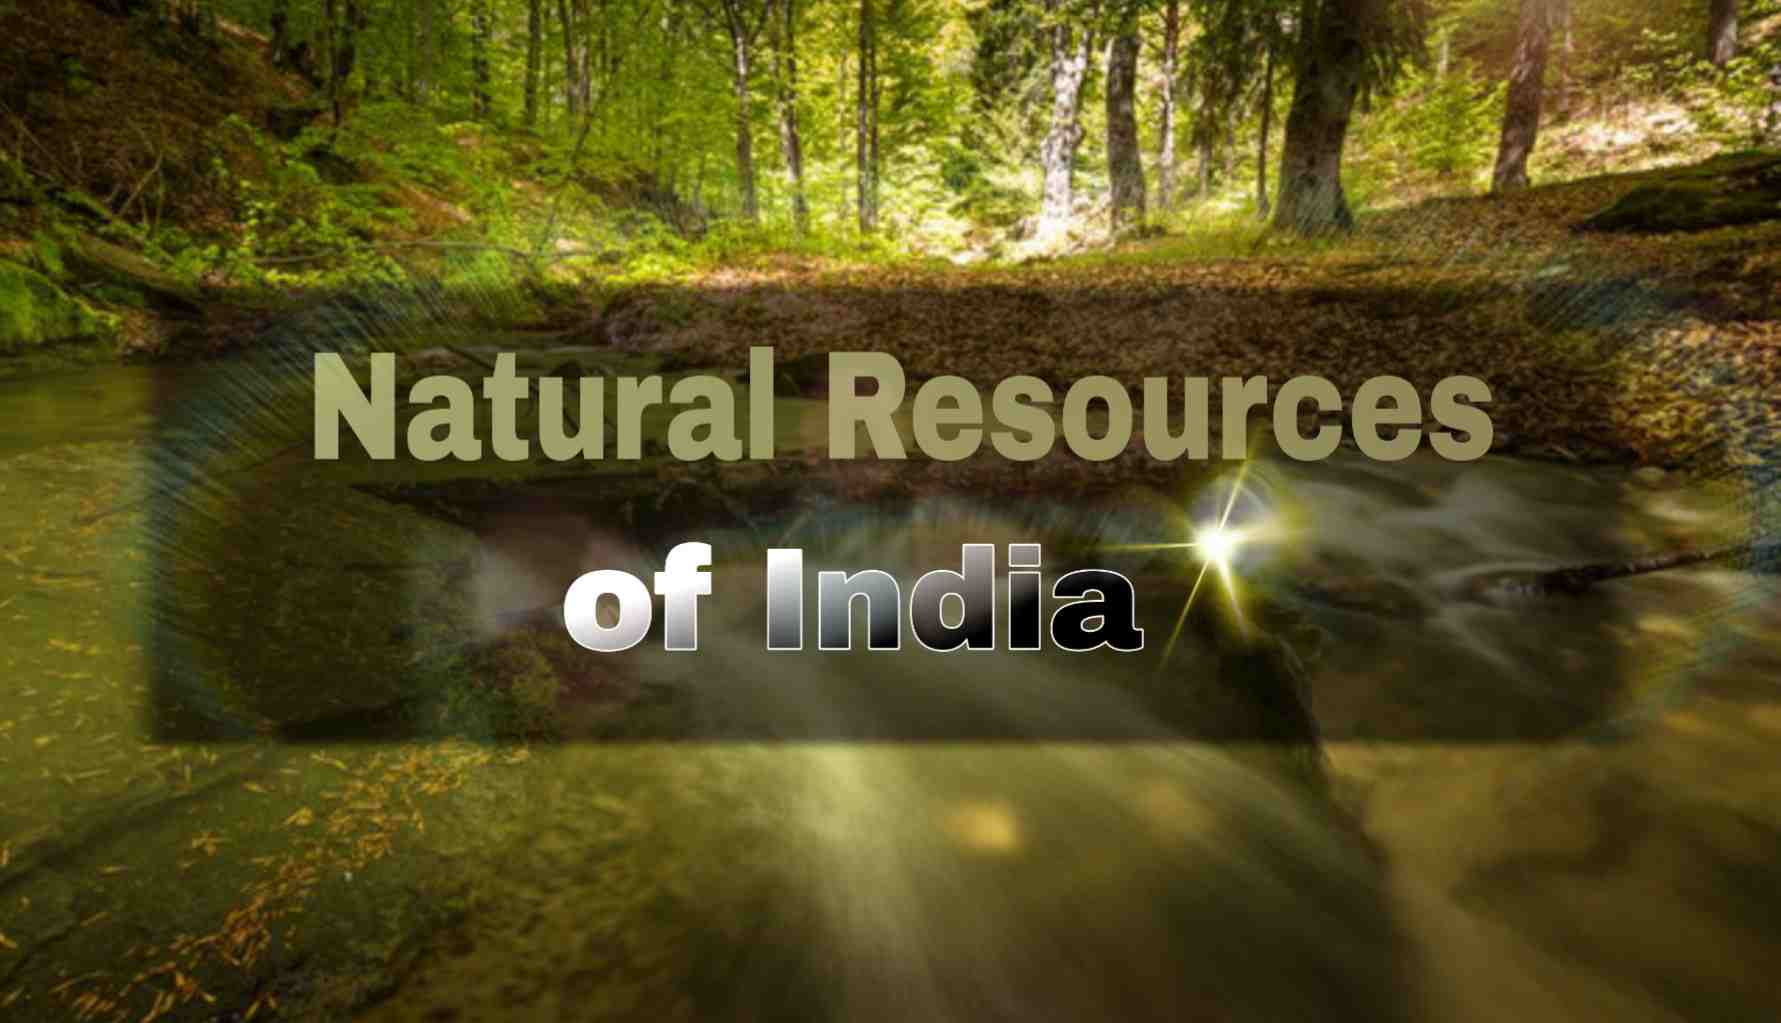 Natural Resources in India